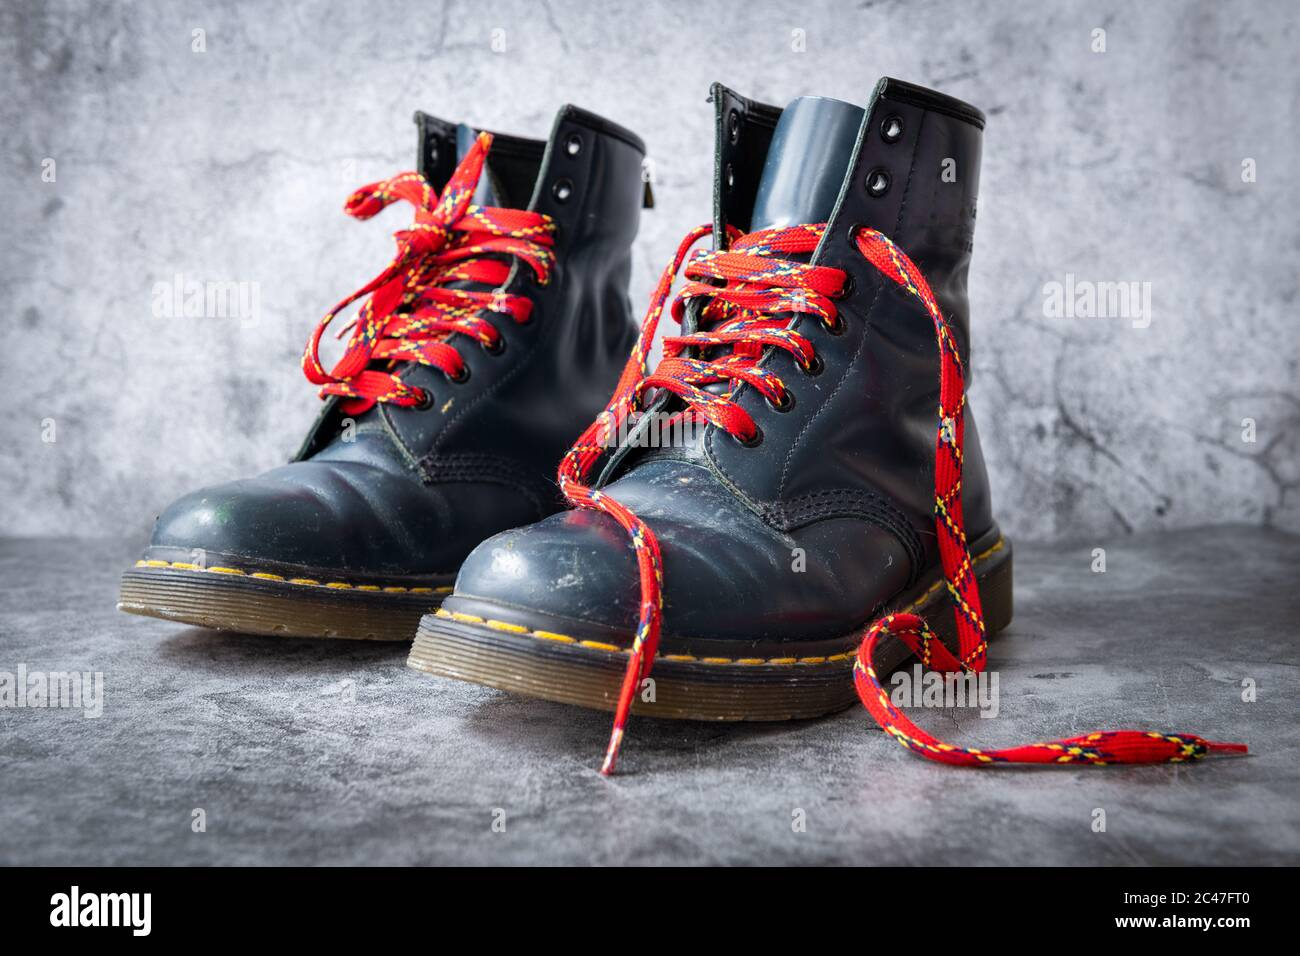 Red Shoe Laces High Resolution Stock